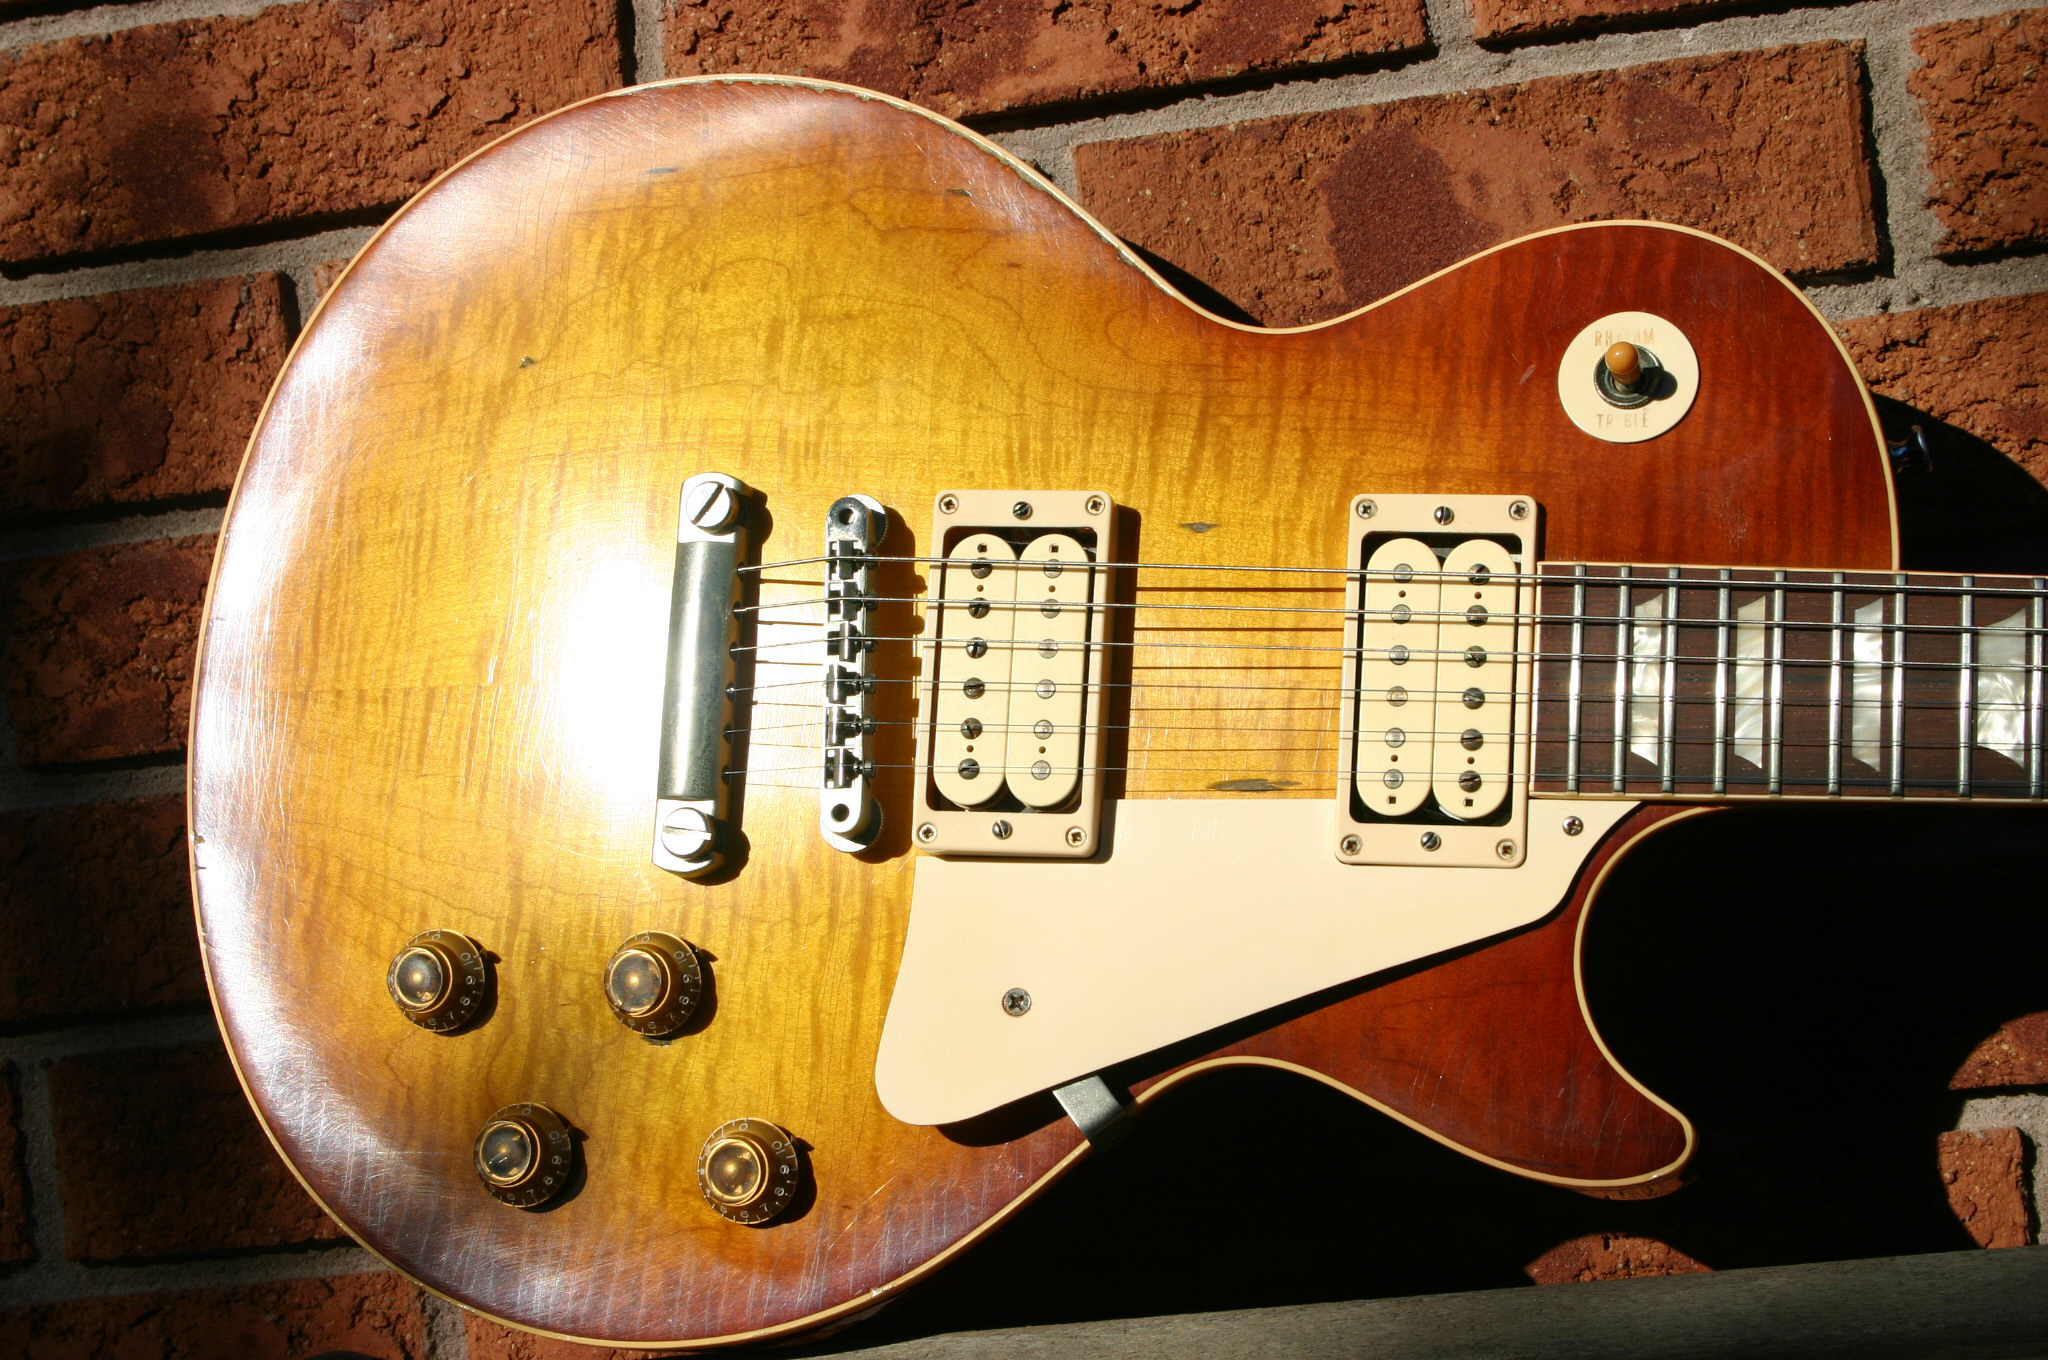 r9front3 amazing vintage les paul wiring photos everything you need to know